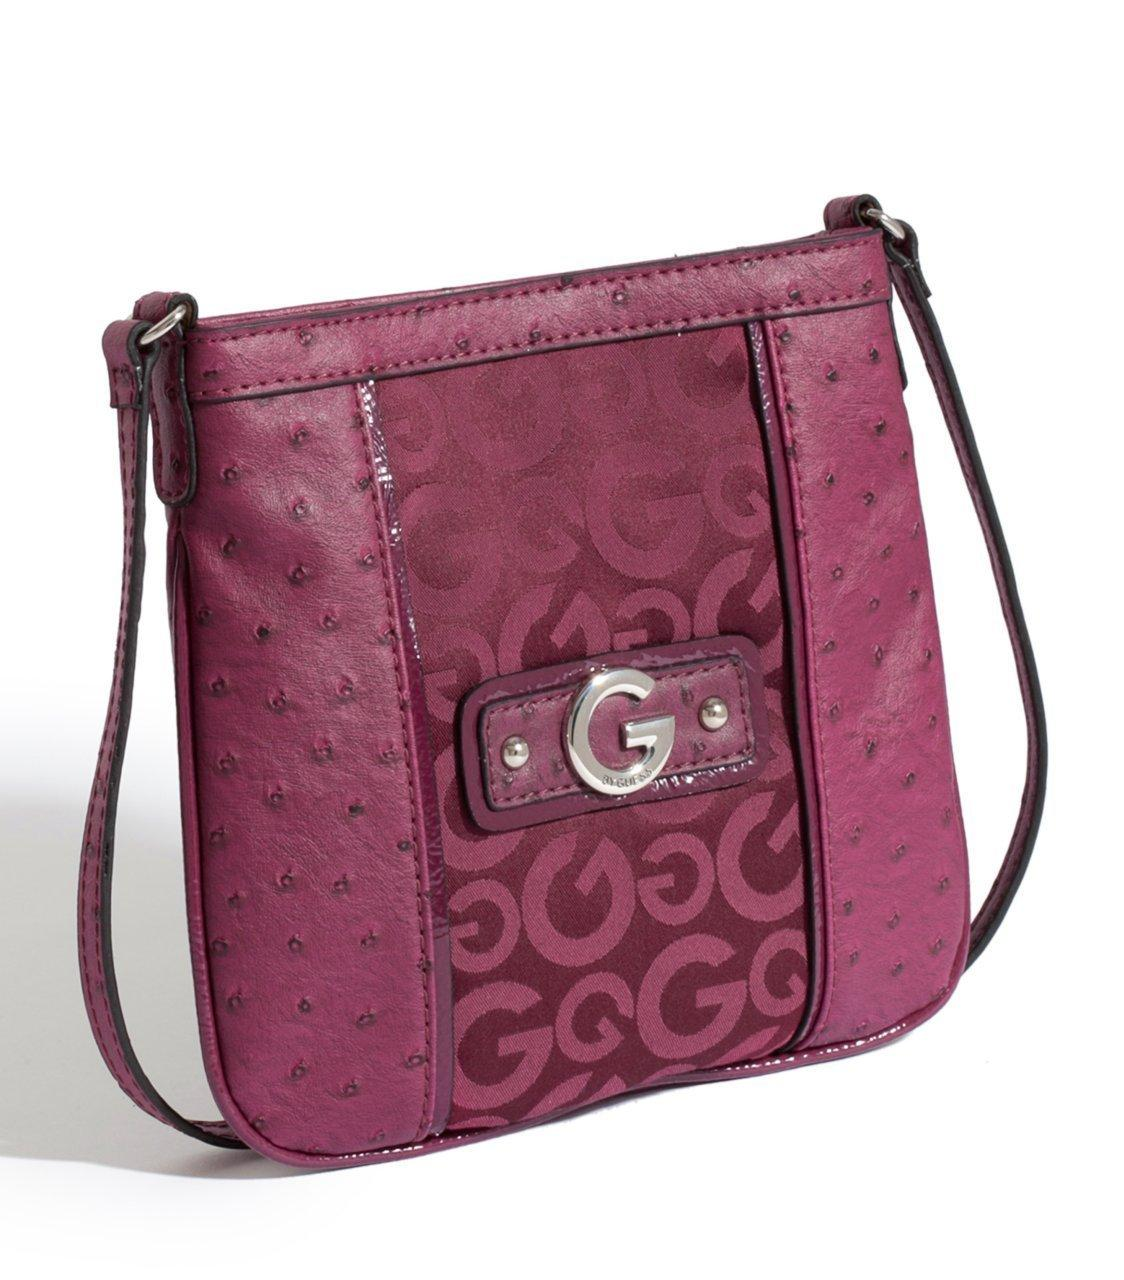 Discounted G By Guess Dancing G Cross Body Bag